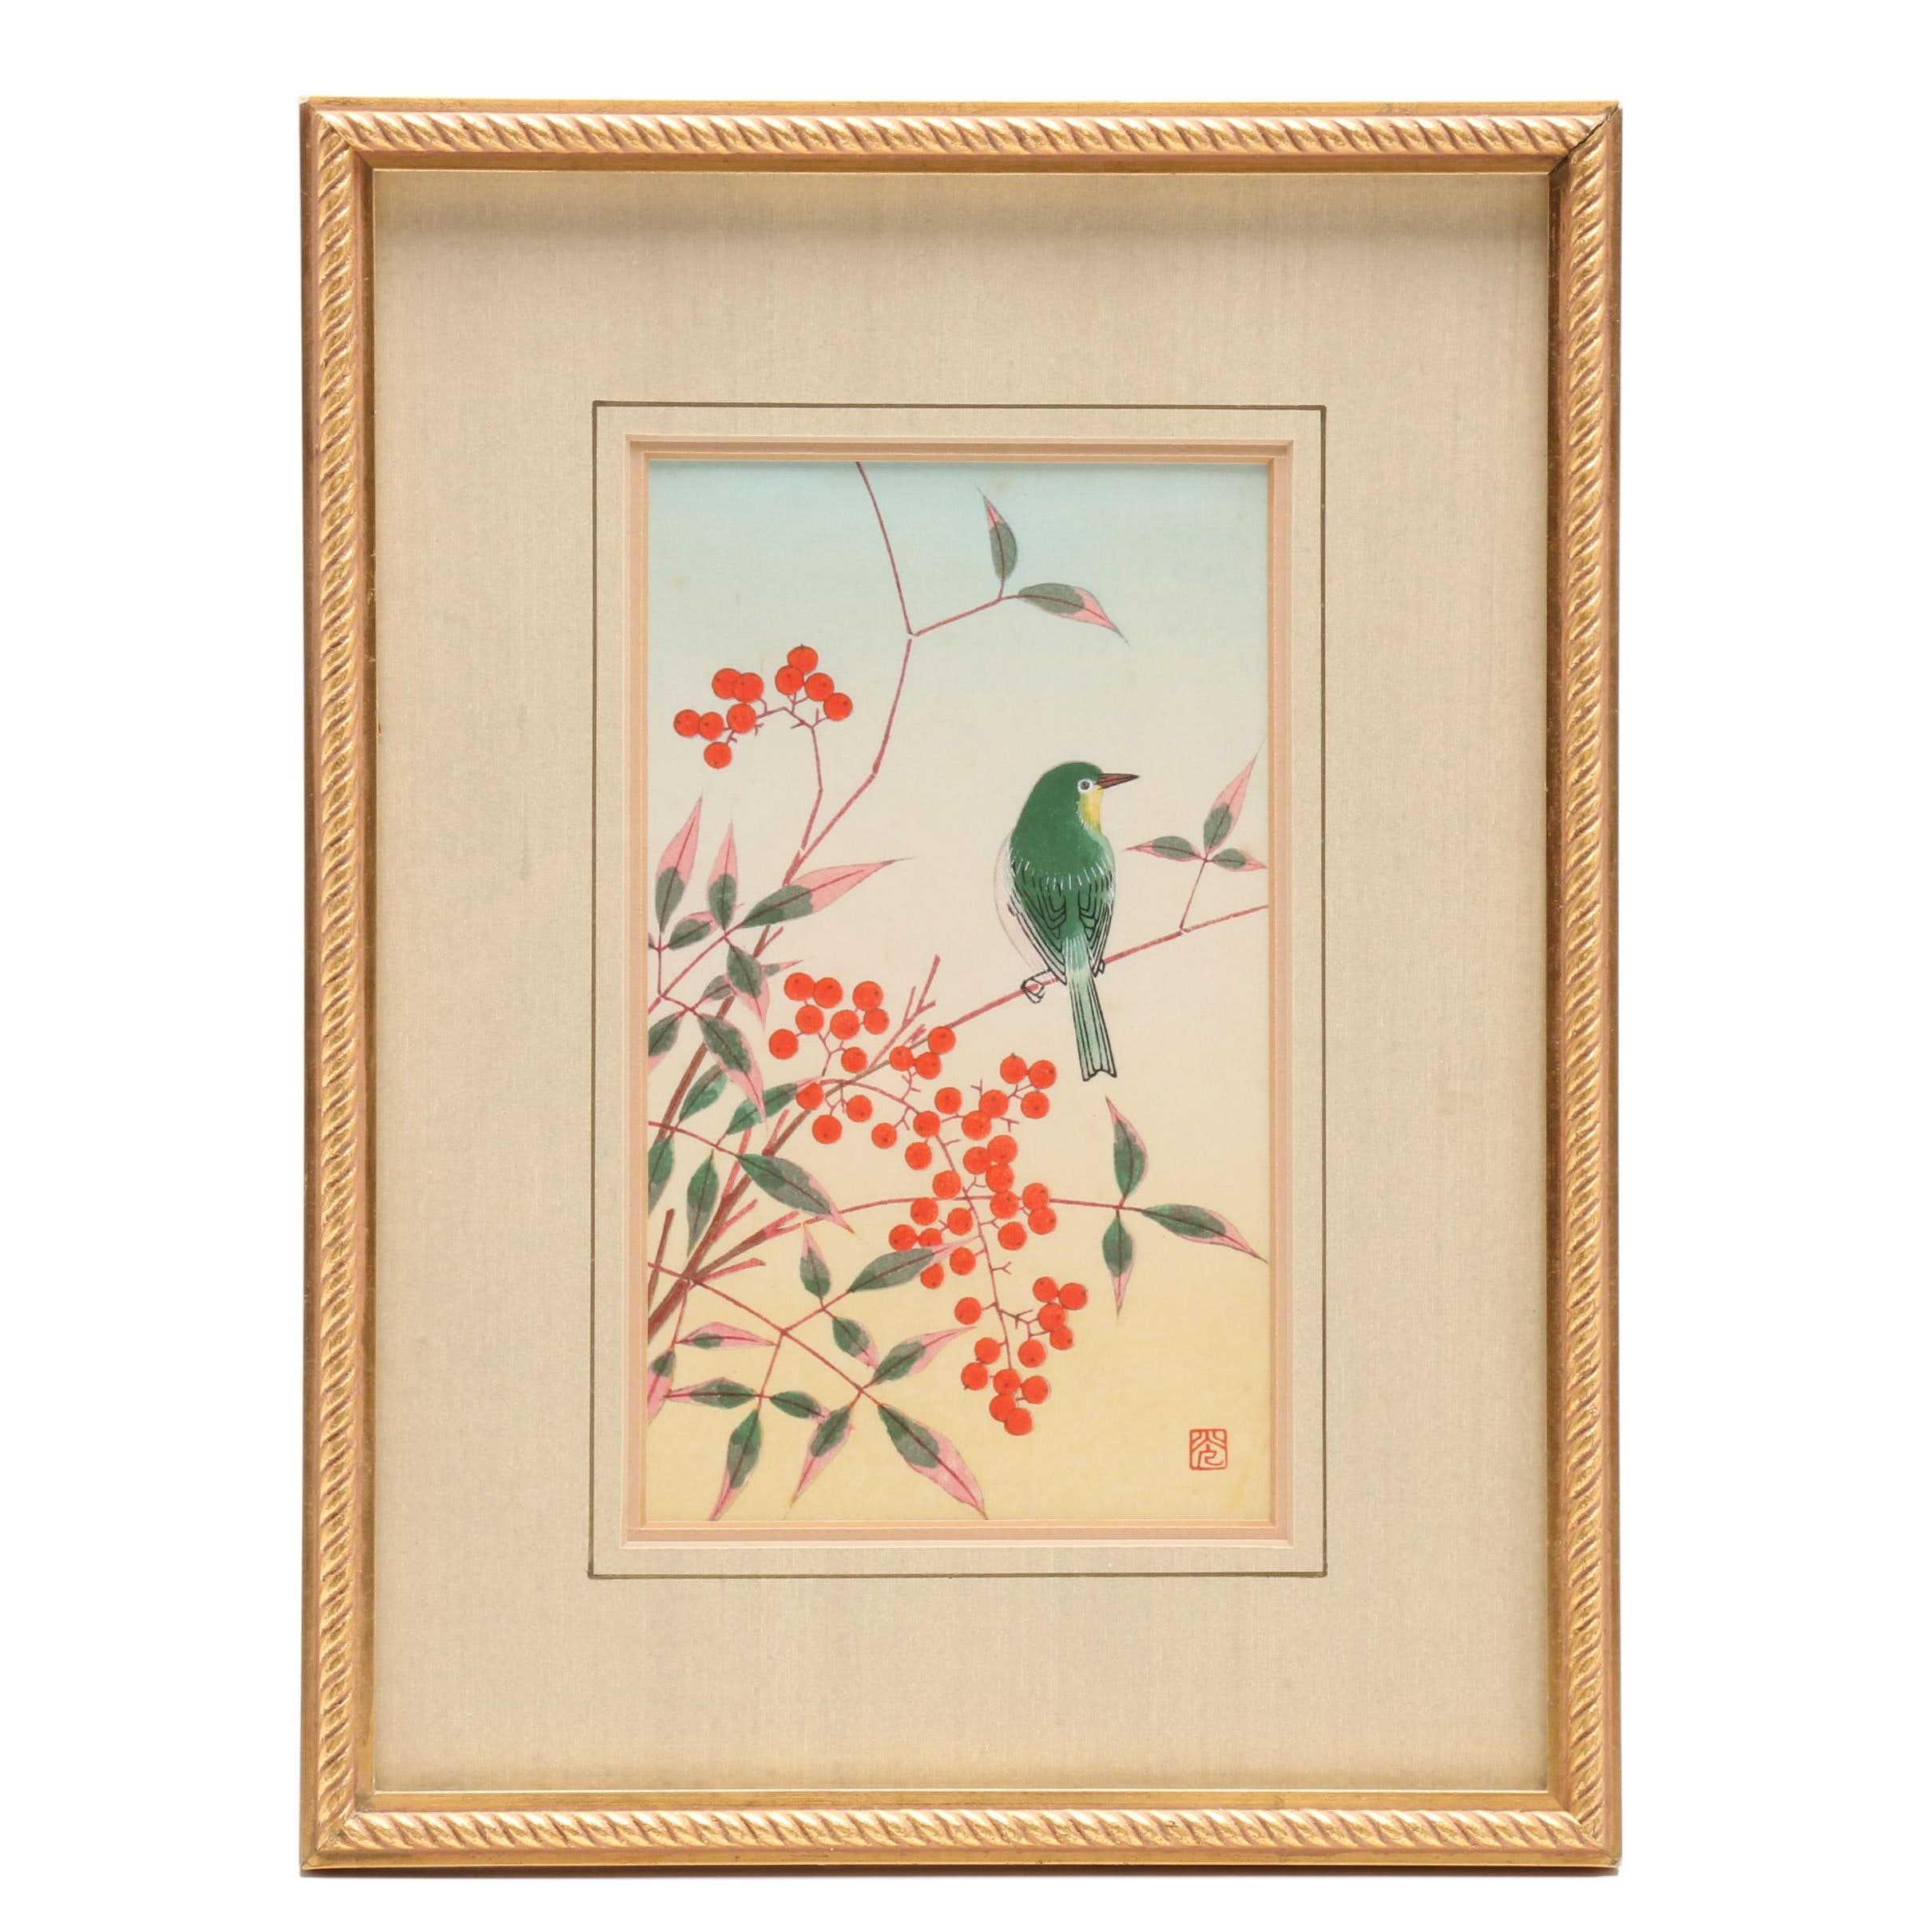 Japanese Woodblock Print of Bird on Branch with Berries